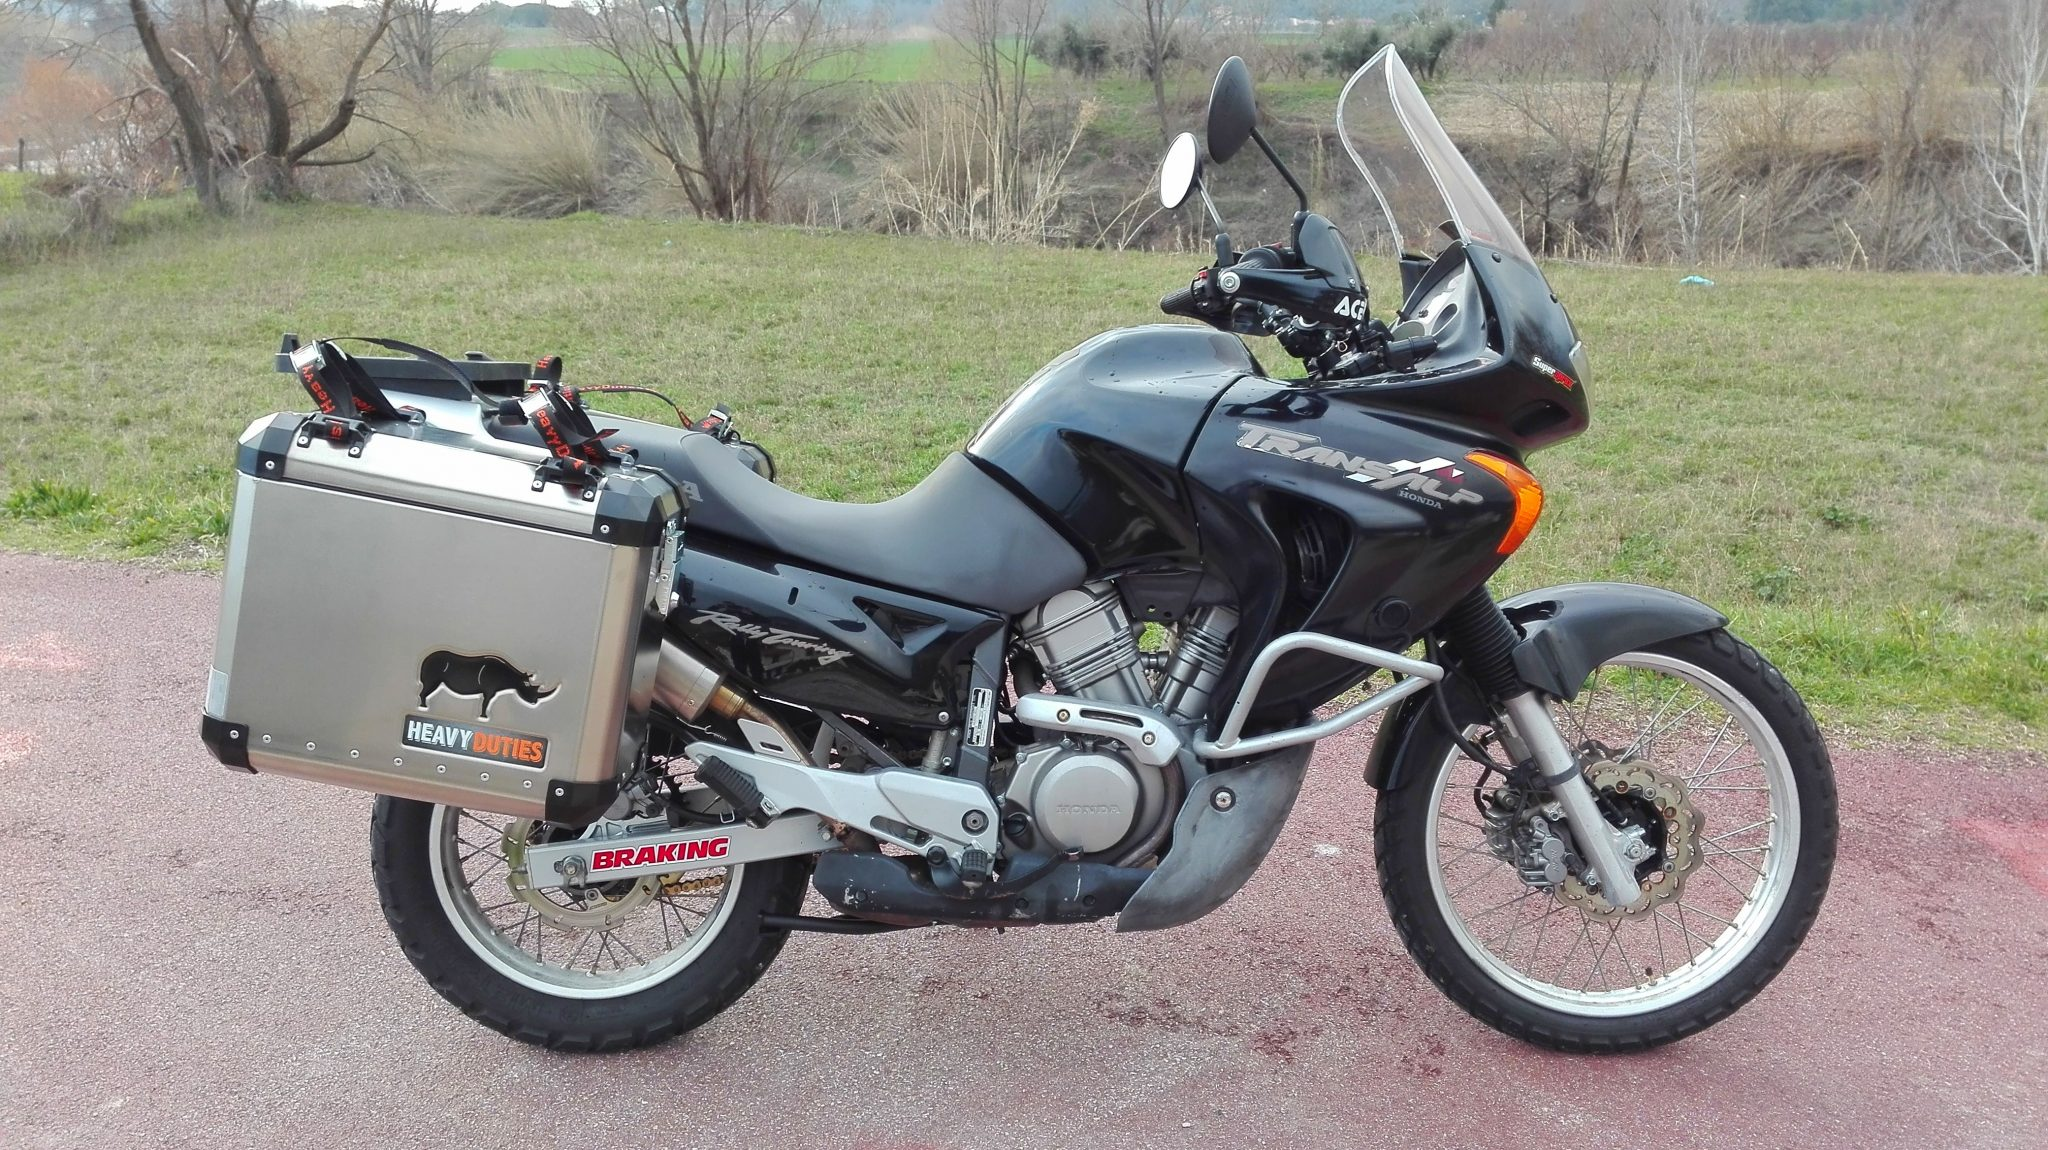 honda transalp 650 panniers heavy duties. Black Bedroom Furniture Sets. Home Design Ideas